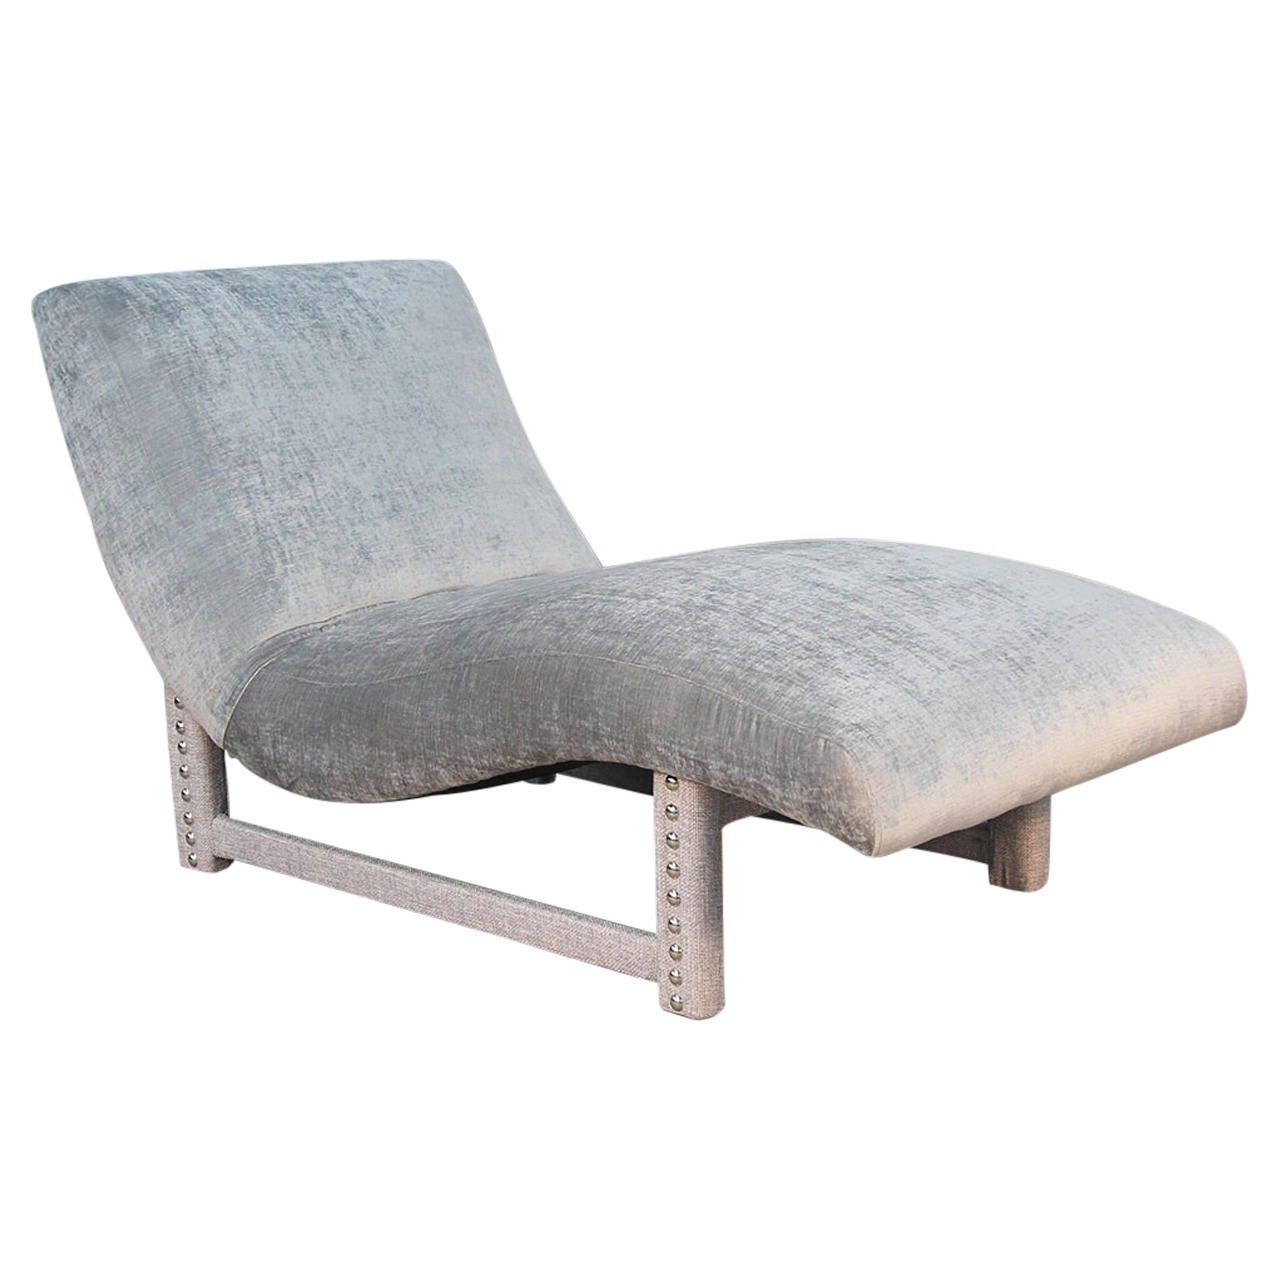 Post modern wave chaise longue in the millennium style at for Chaise longue moderne